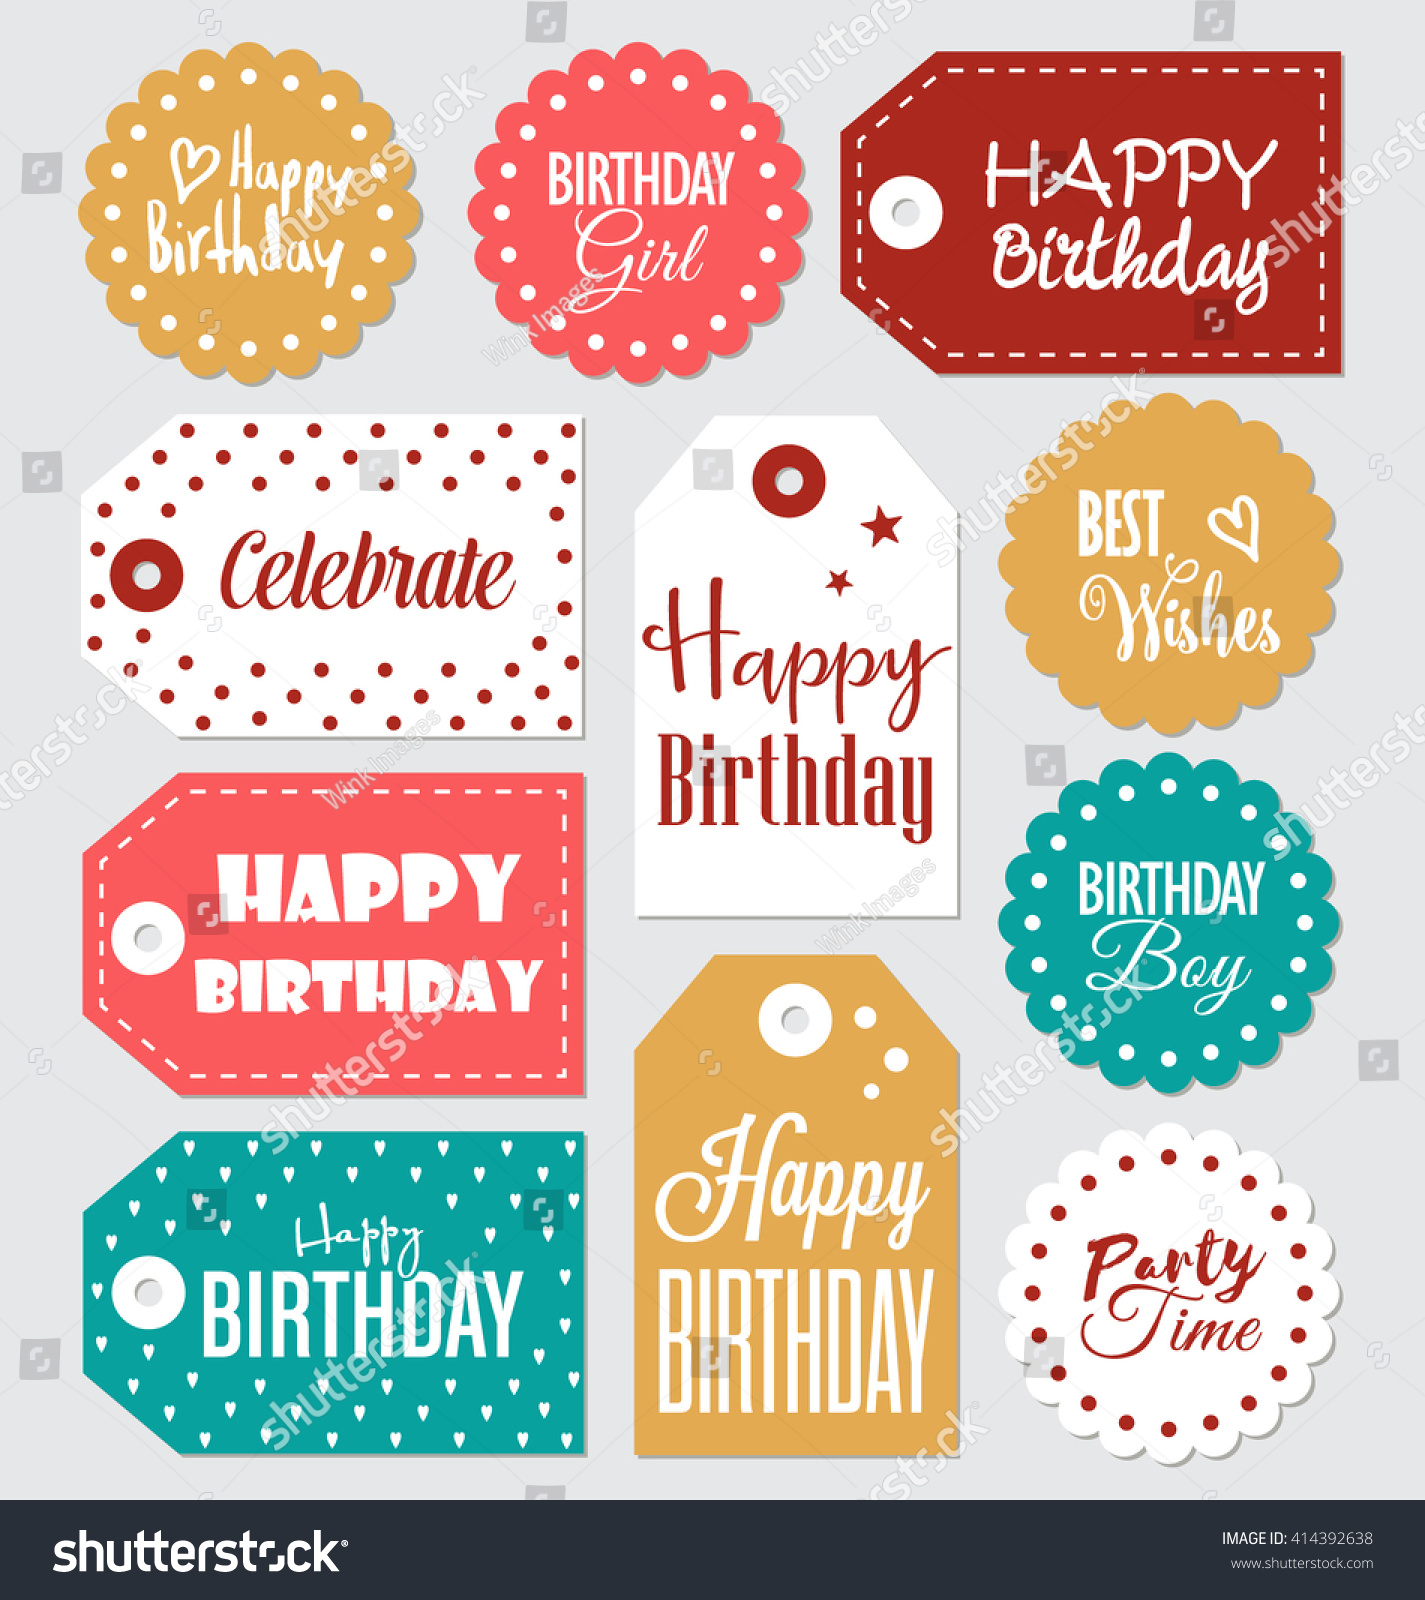 happy birthday printable gift tags ; stock-vector-set-of-birthday-gift-tags-typographic-vector-design-with-illustrations-and-wishes-happy-birthday-414392638